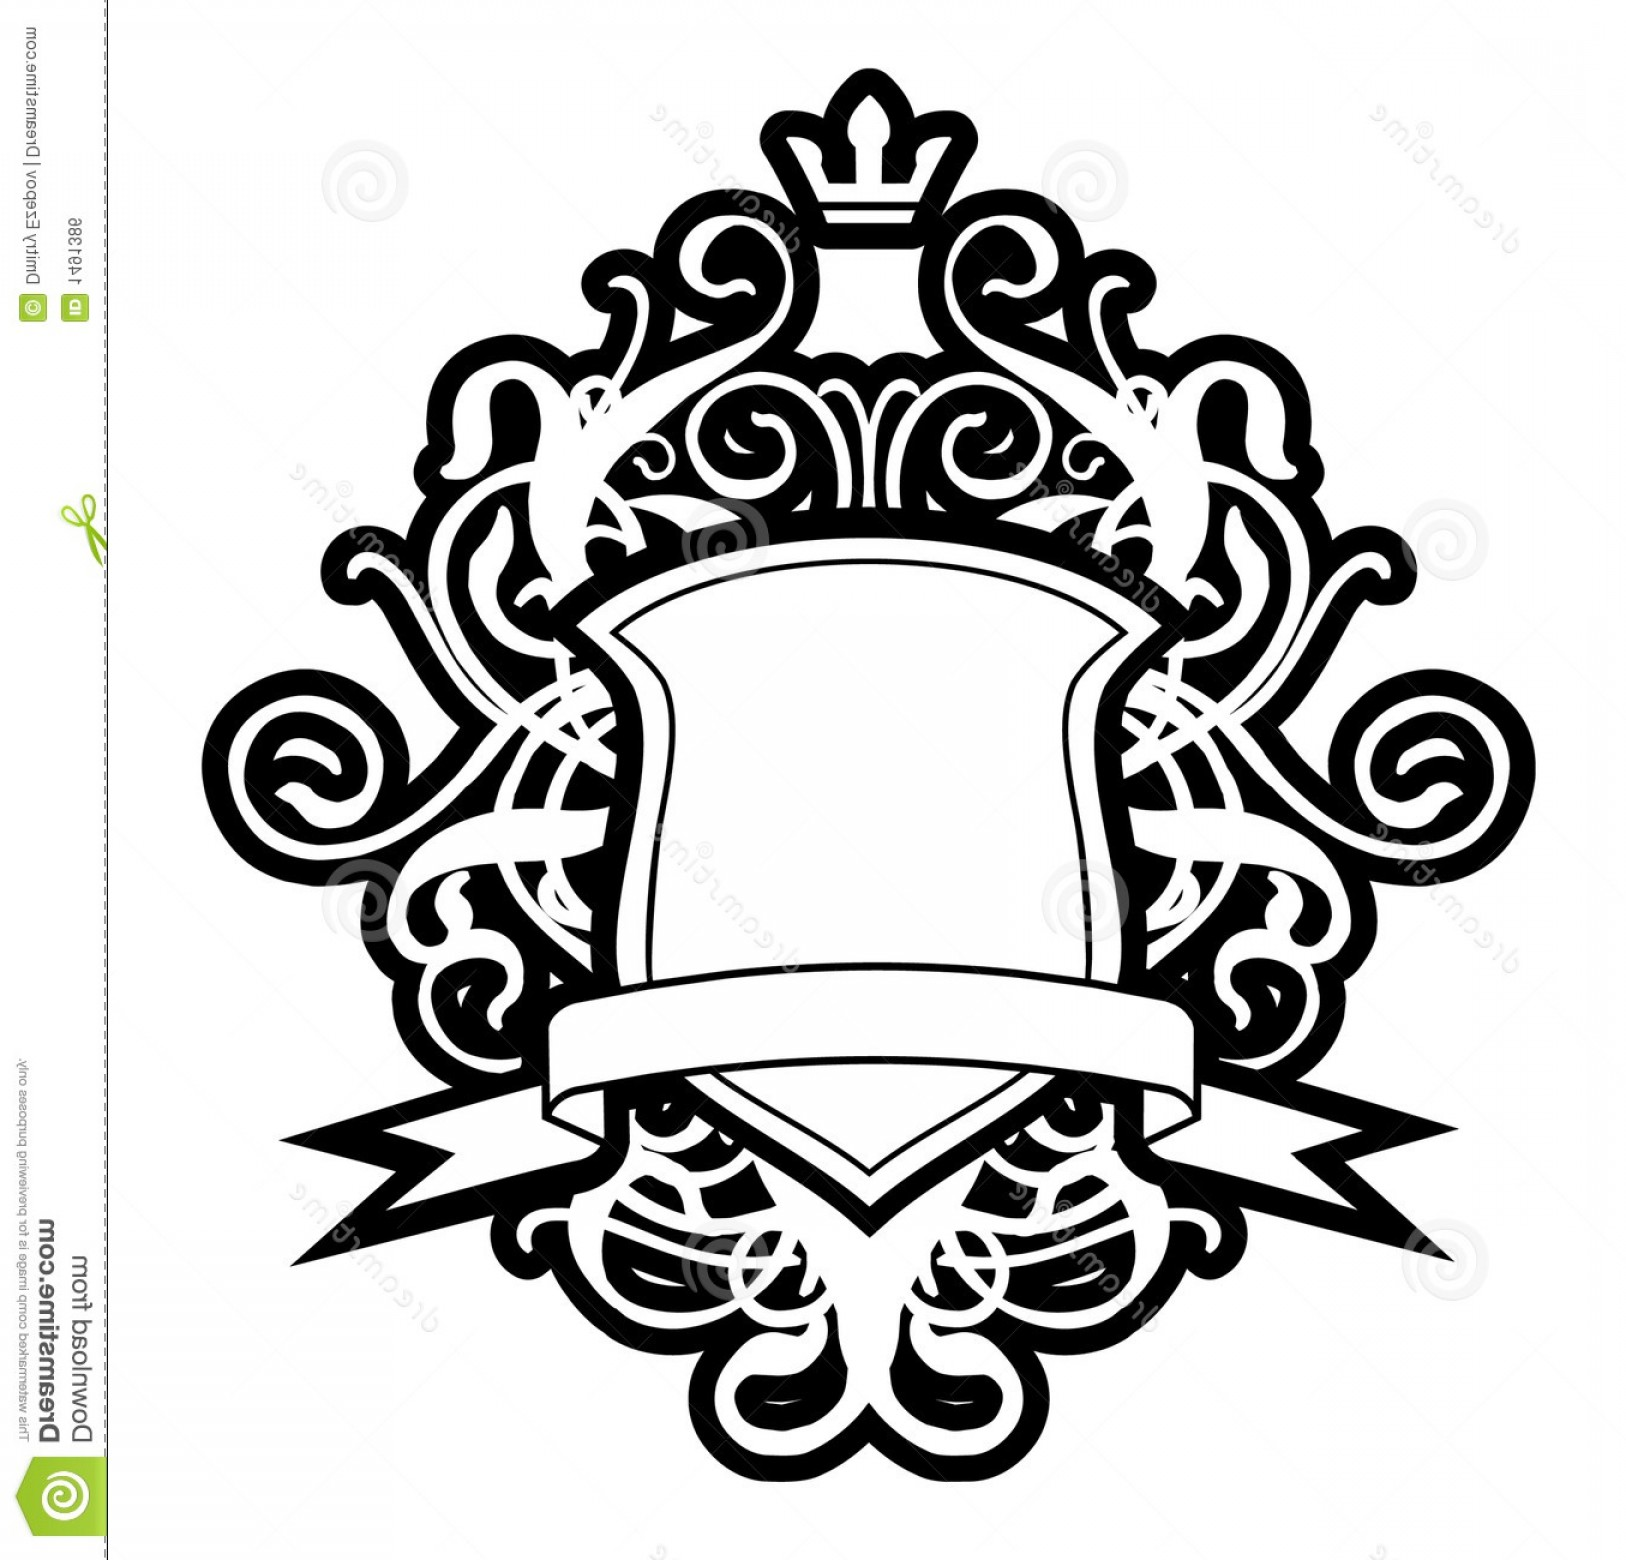 graphic transparent Vector crest coat arm. Royalty free stock image